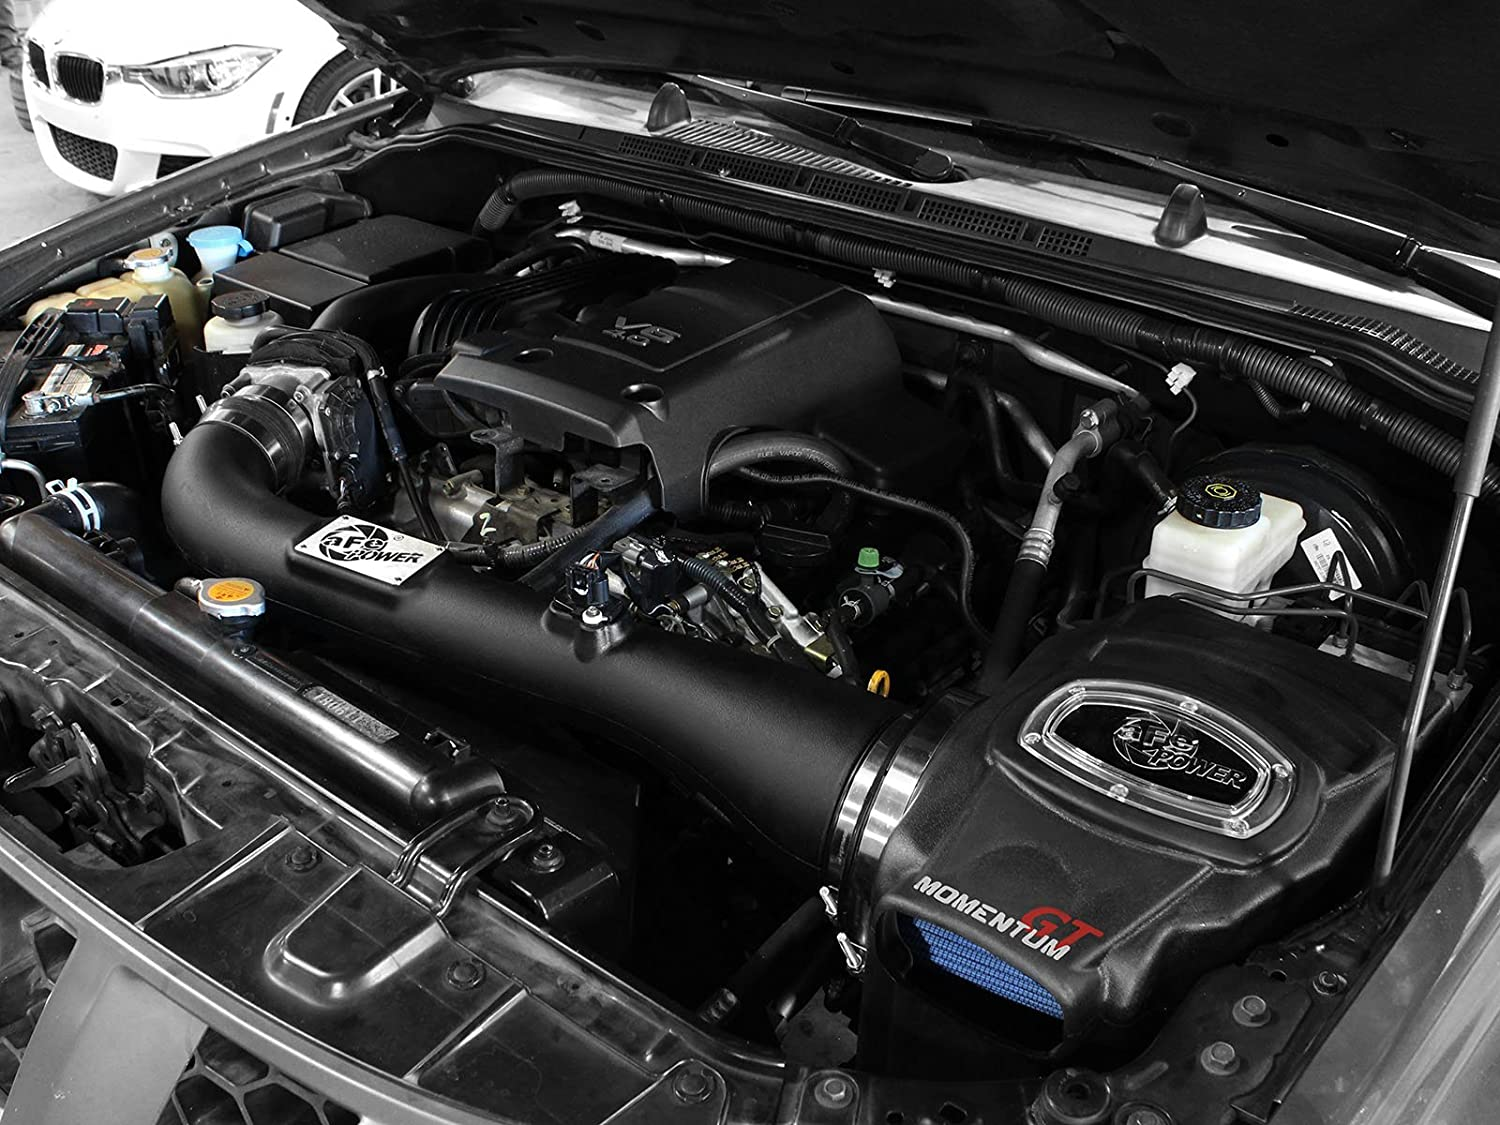 Afe Power Momentum Gt 54 76102 Nissan Frontier Xterra Engine Diagram Turbocharge Performance Intake System Oiled 5 Layer Filter Automotive